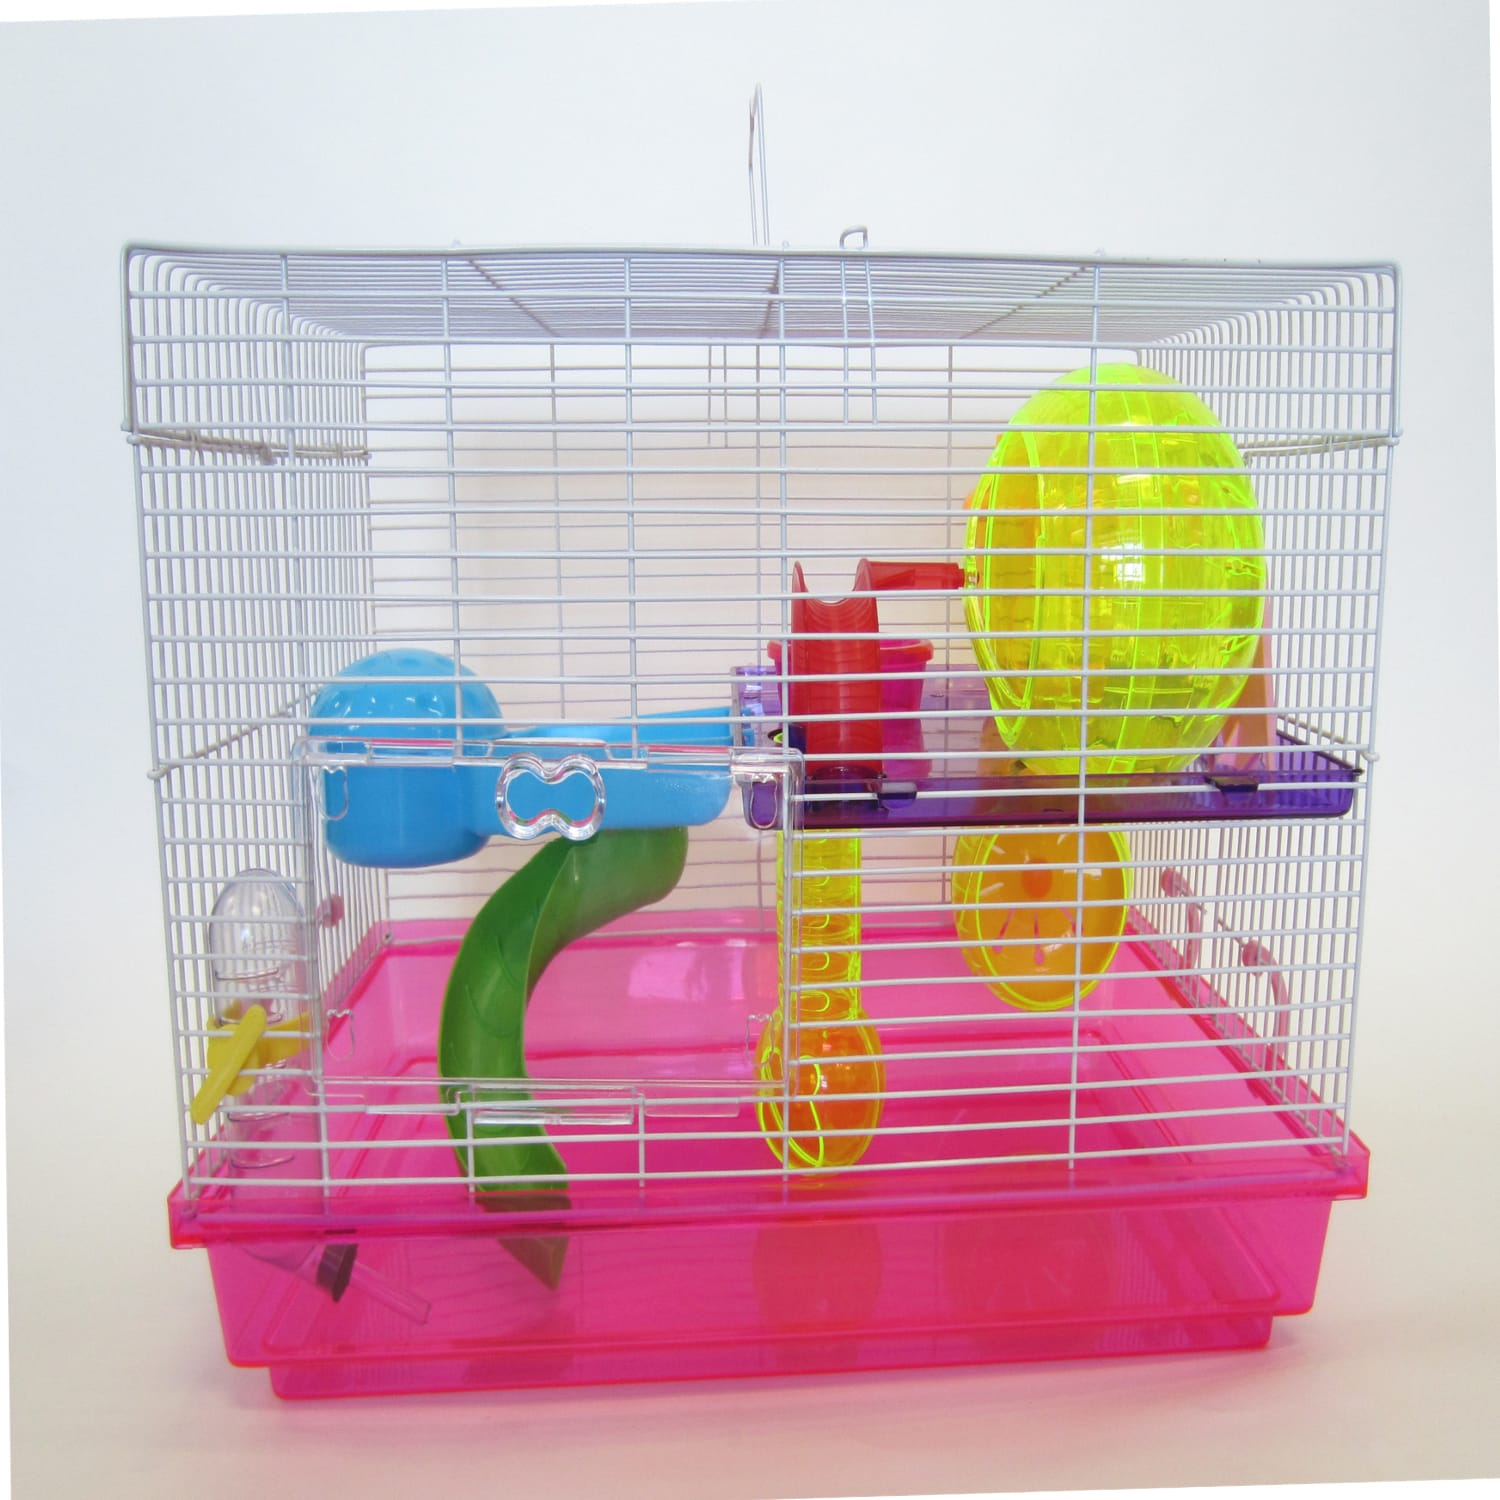 Yml Pink Large Hamster Cage 18 L X 12 W X 12 H Petco